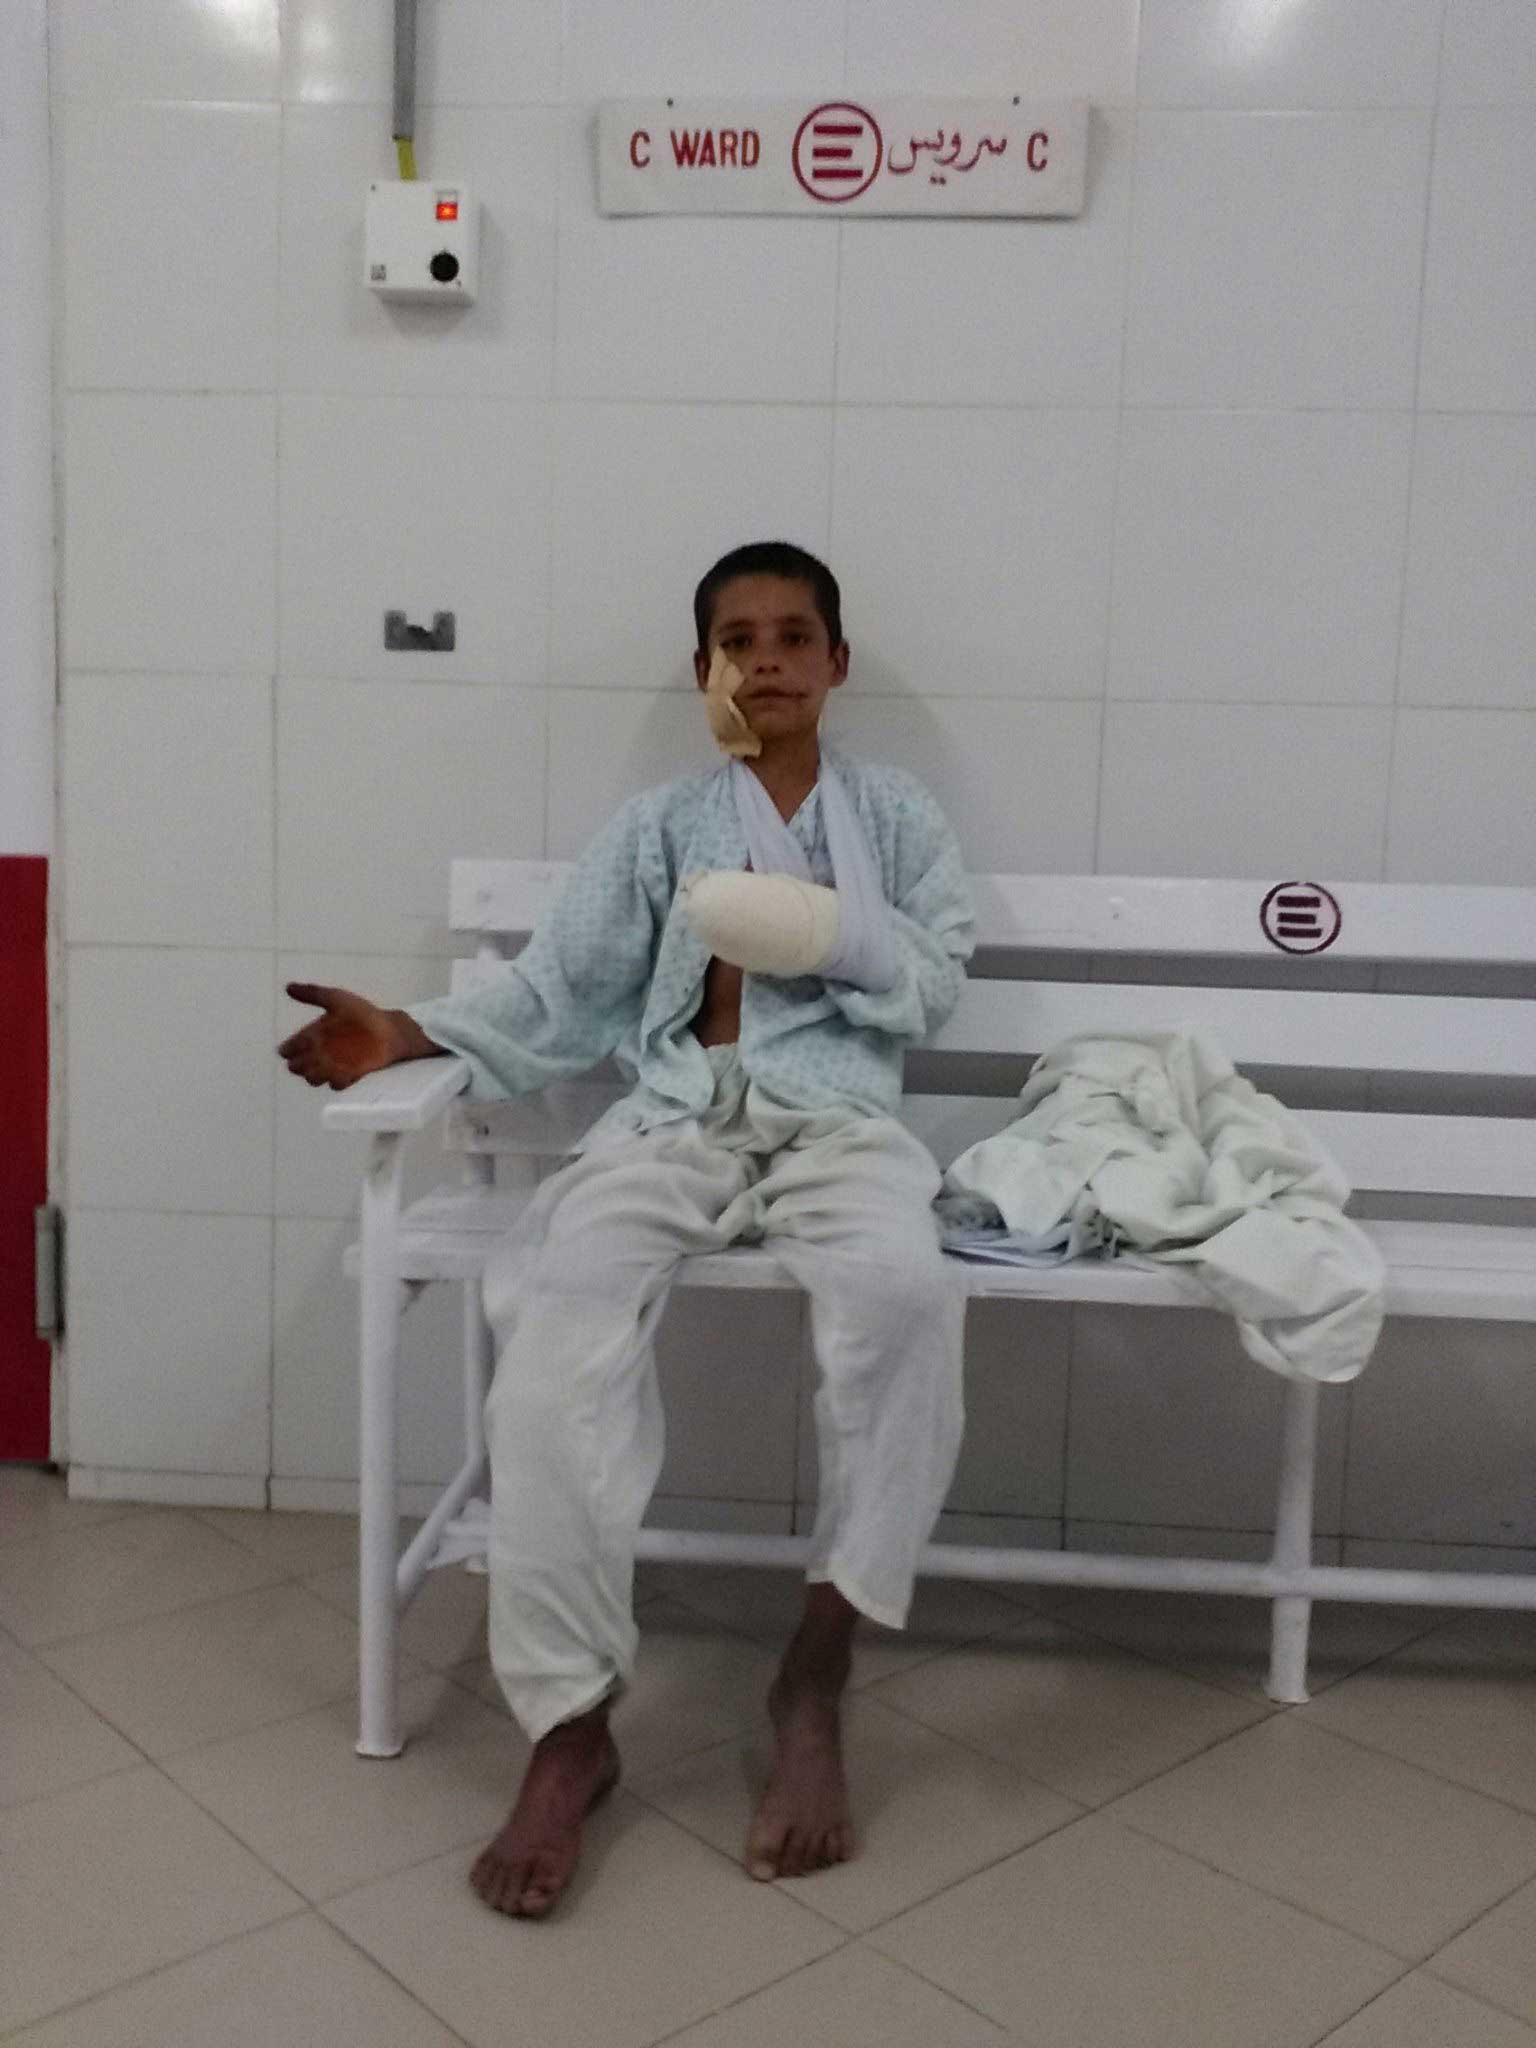 At the entrance of one of Lashkar-gah's hospital wards, a child shows his injured arm.